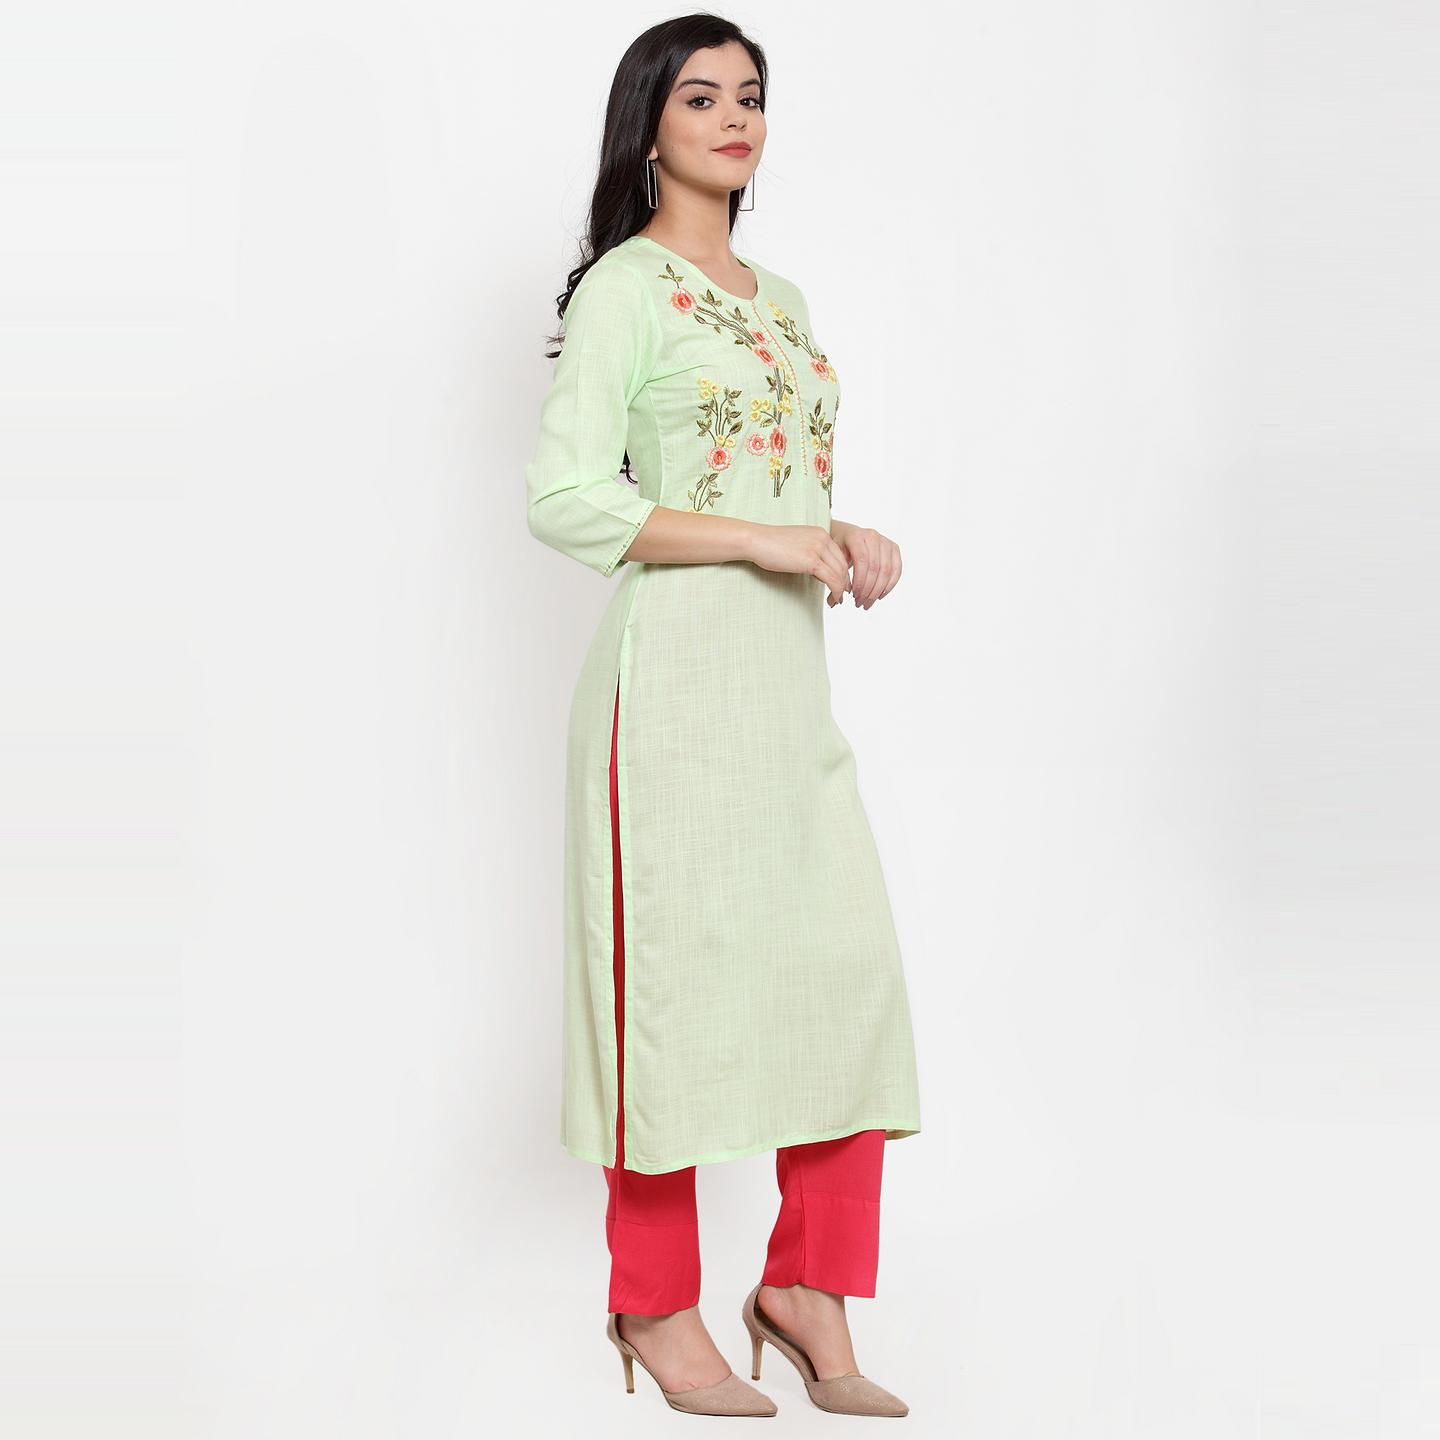 Blooming Green Colored Party Wear Embroidered Calf Length Straight Viscose-Rayon Kurti